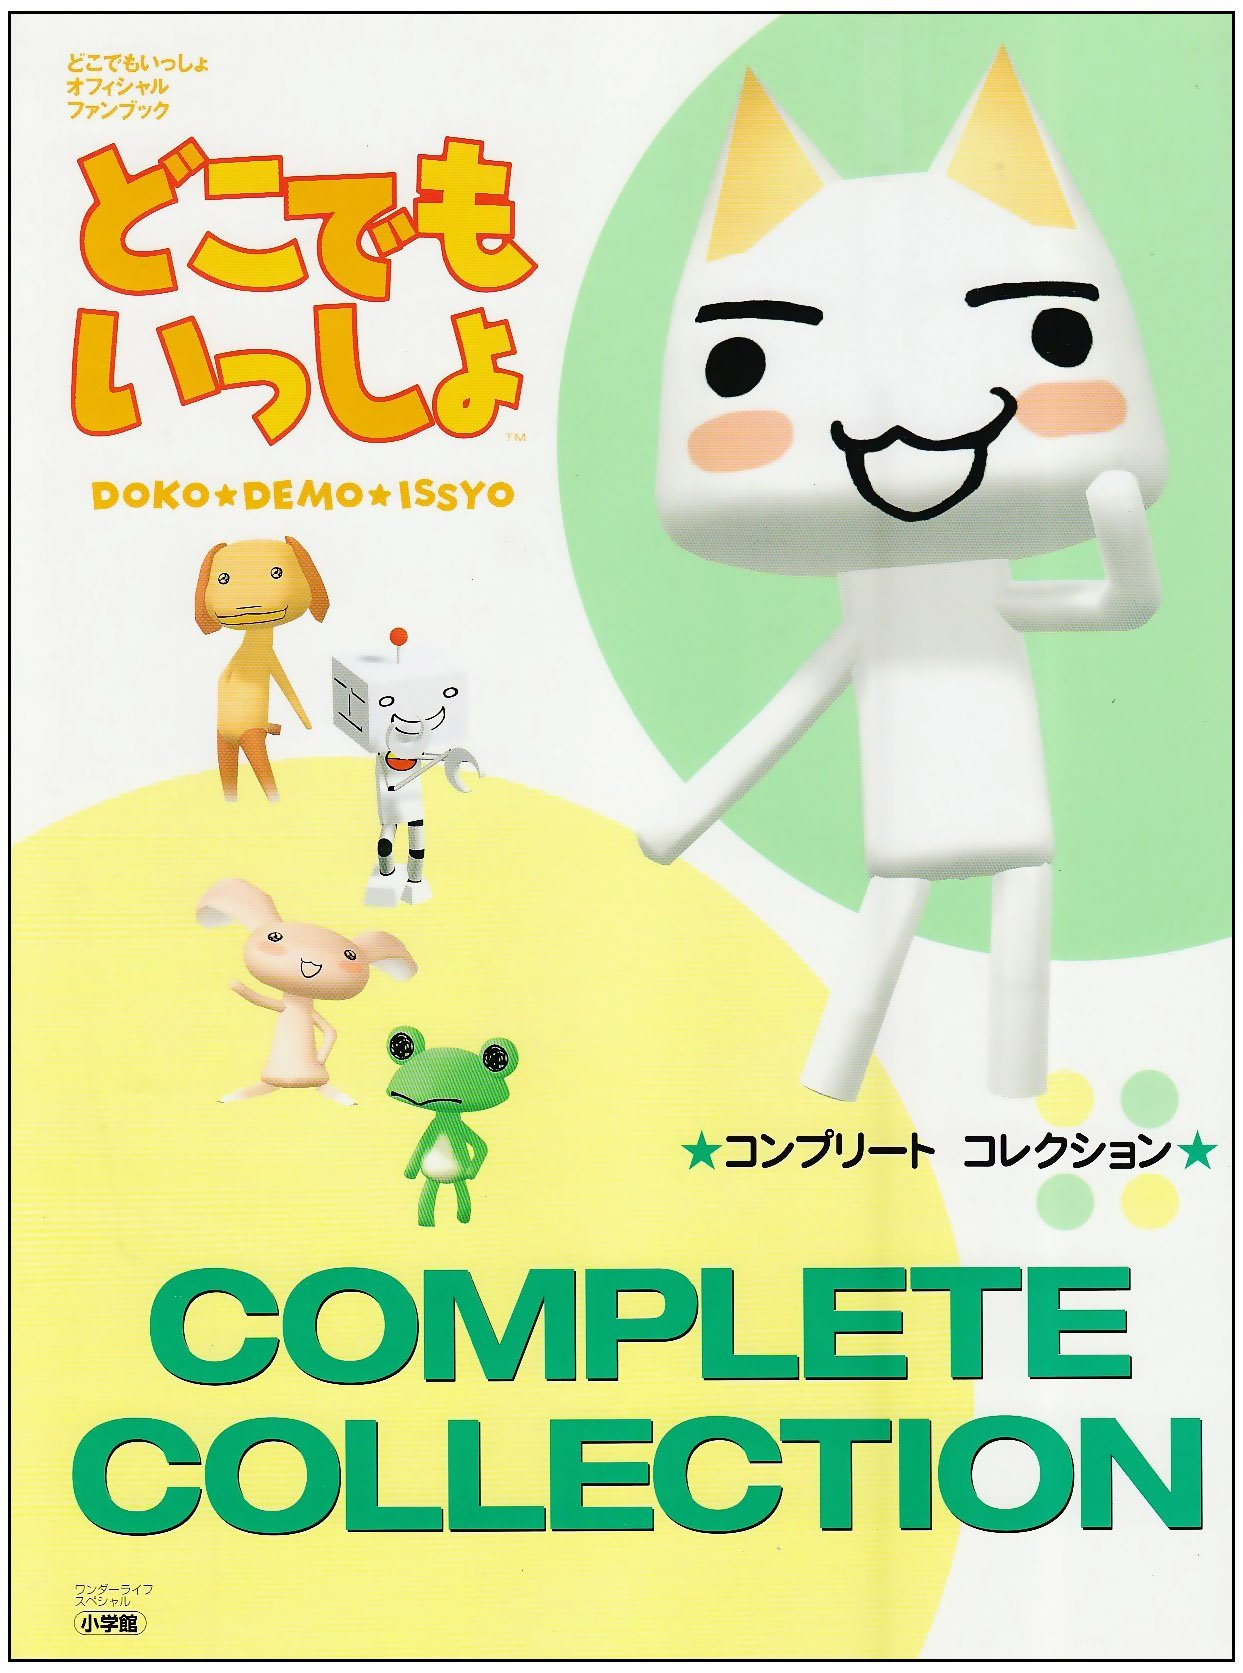 Doko Demo Issho Complete Collection